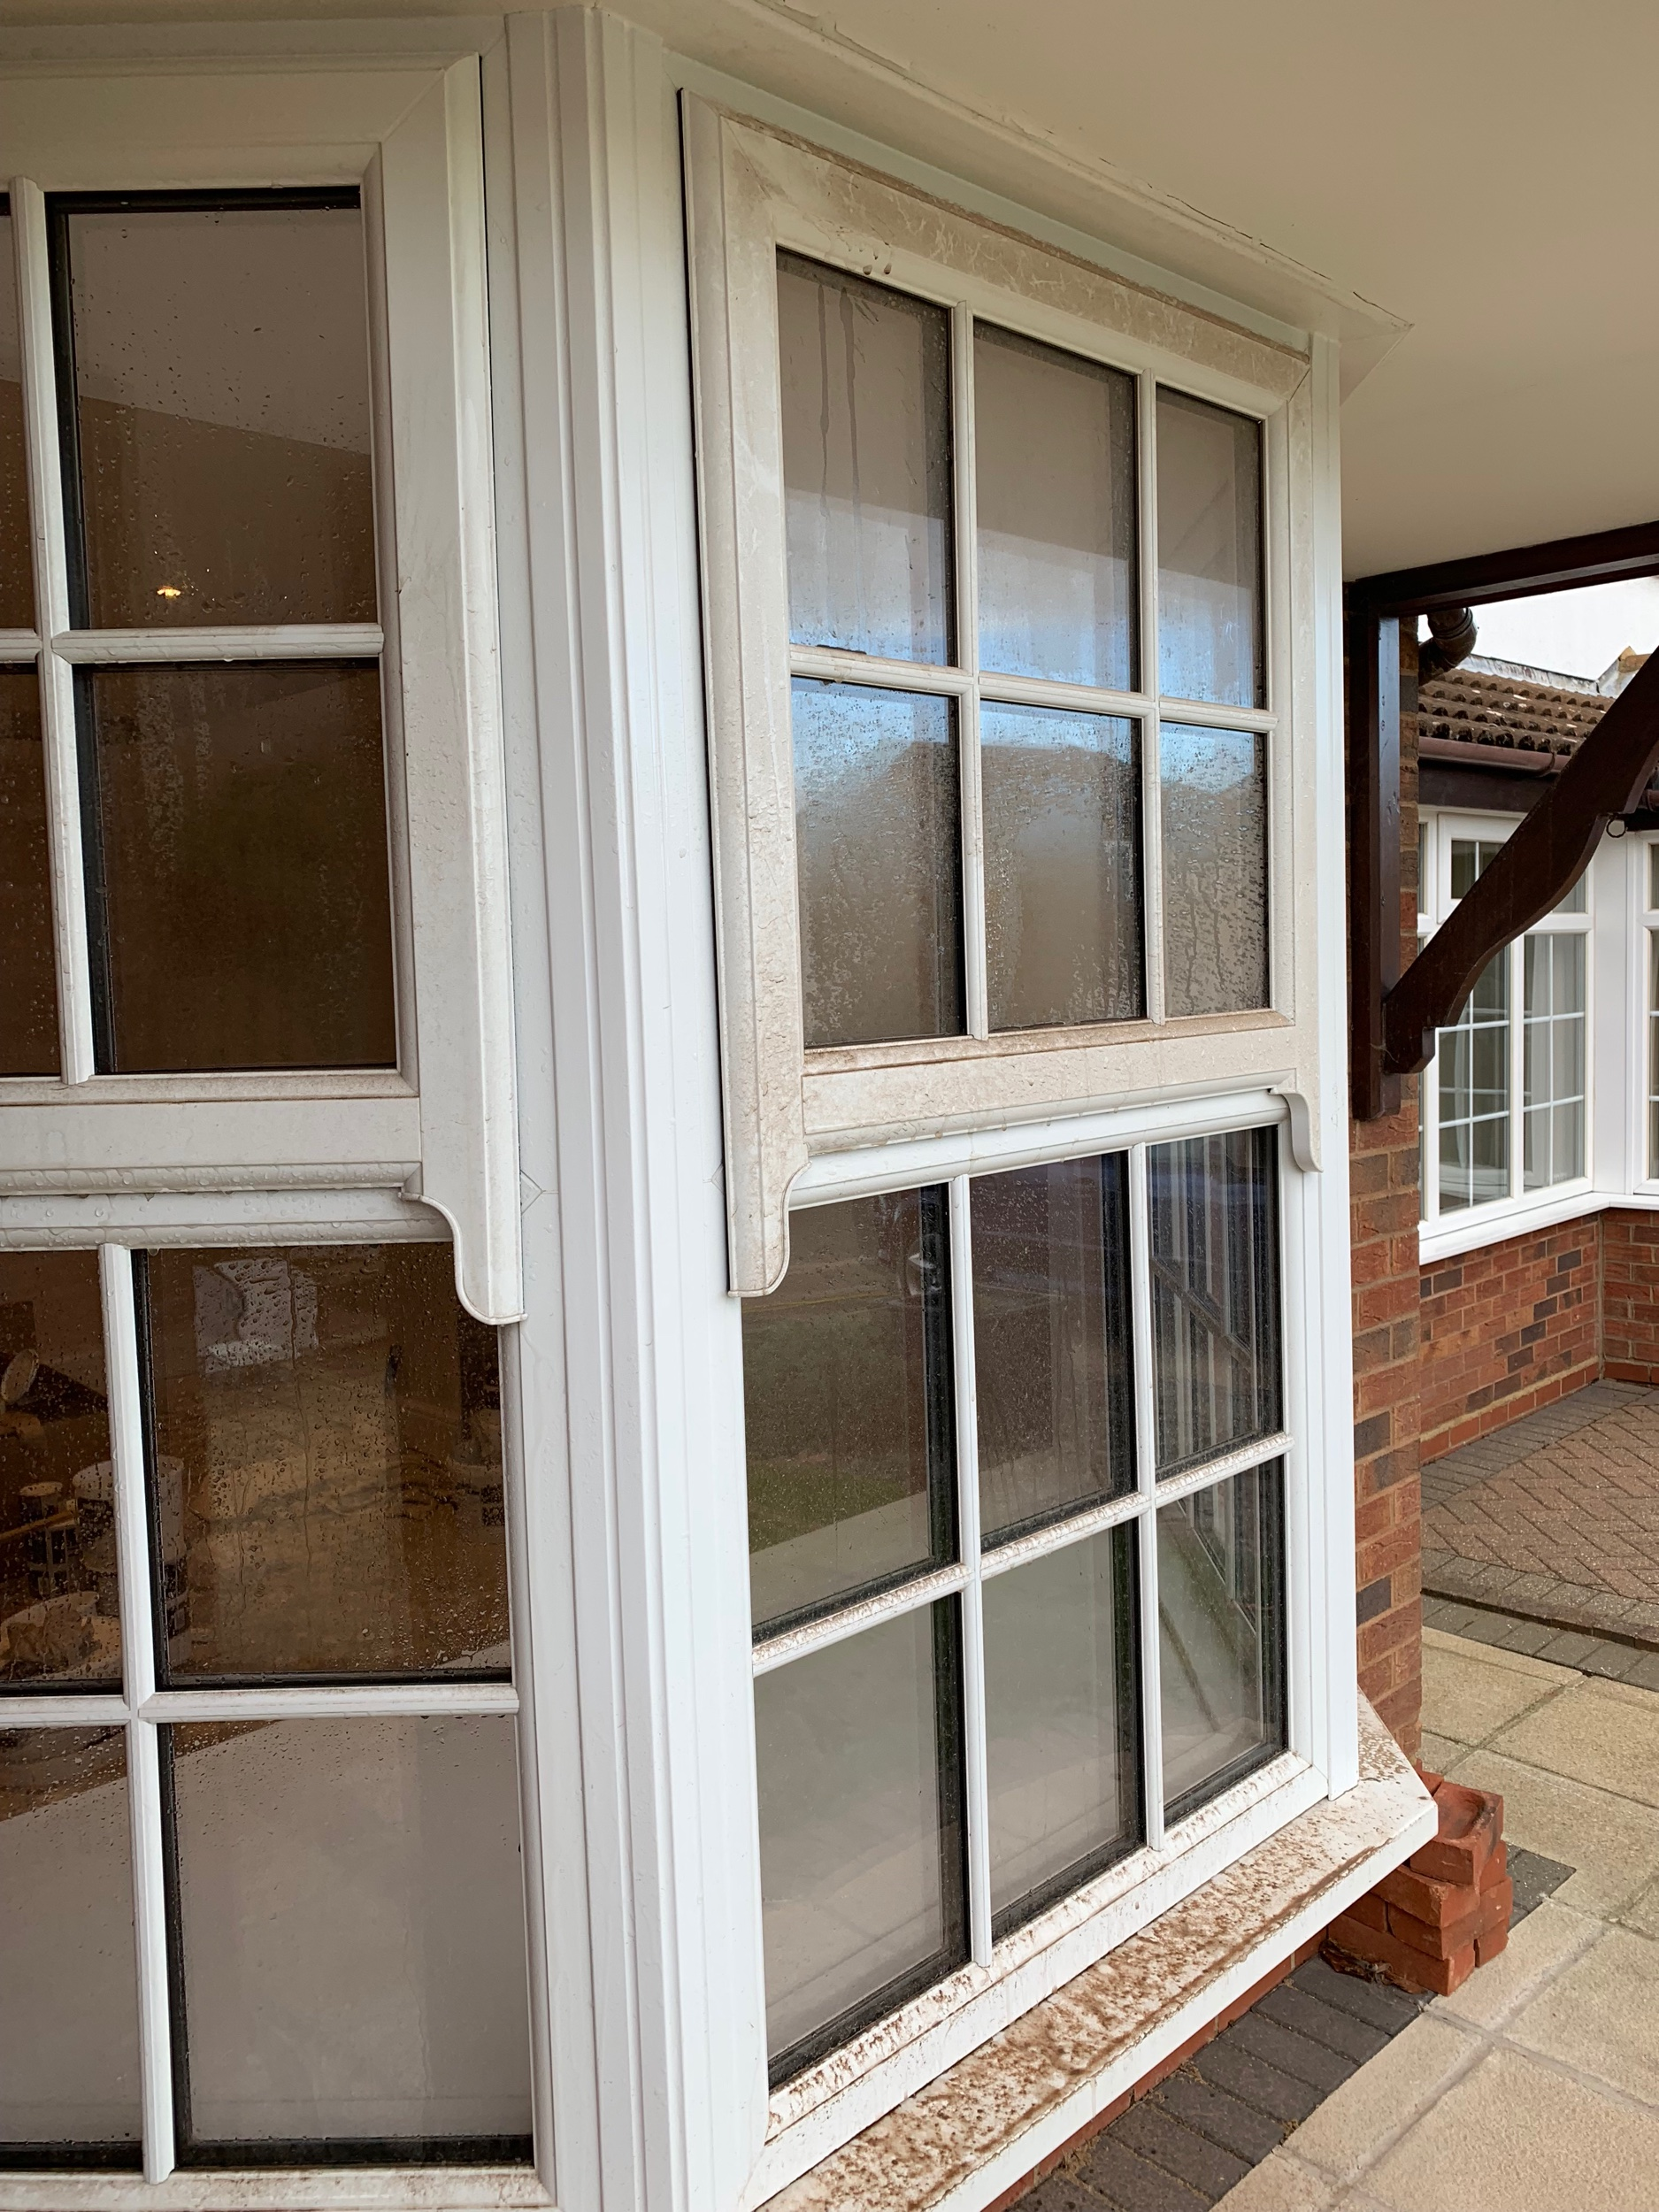 window cleaning - Dirty windows? Our speciality!! Whether its a bungalow, commercial premises or windows 60 feet high we can clean your windows and leave them with a streak free finish. Using the reach and wash system helps us to do this from the safety of the ground.